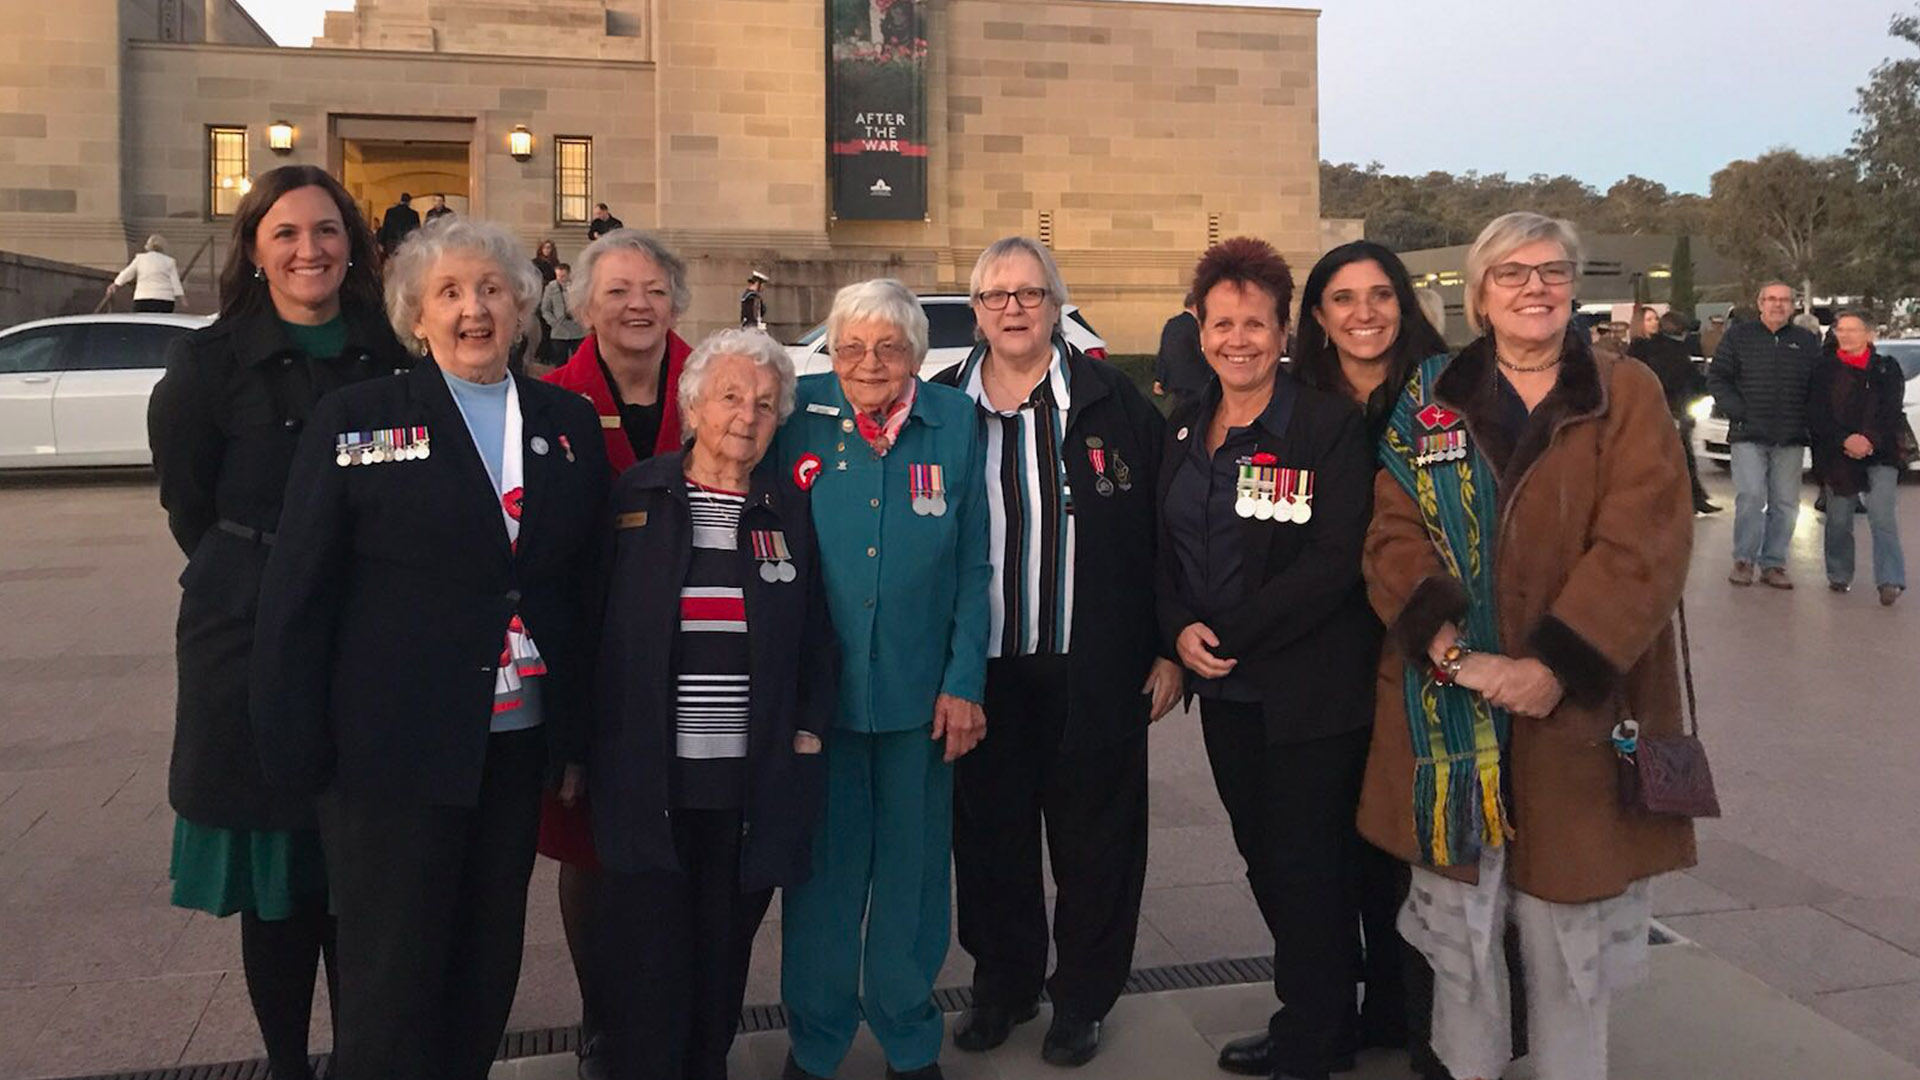 9 women wearing military medals stand together proudly looking into the camera in front of the Australian war memorial.